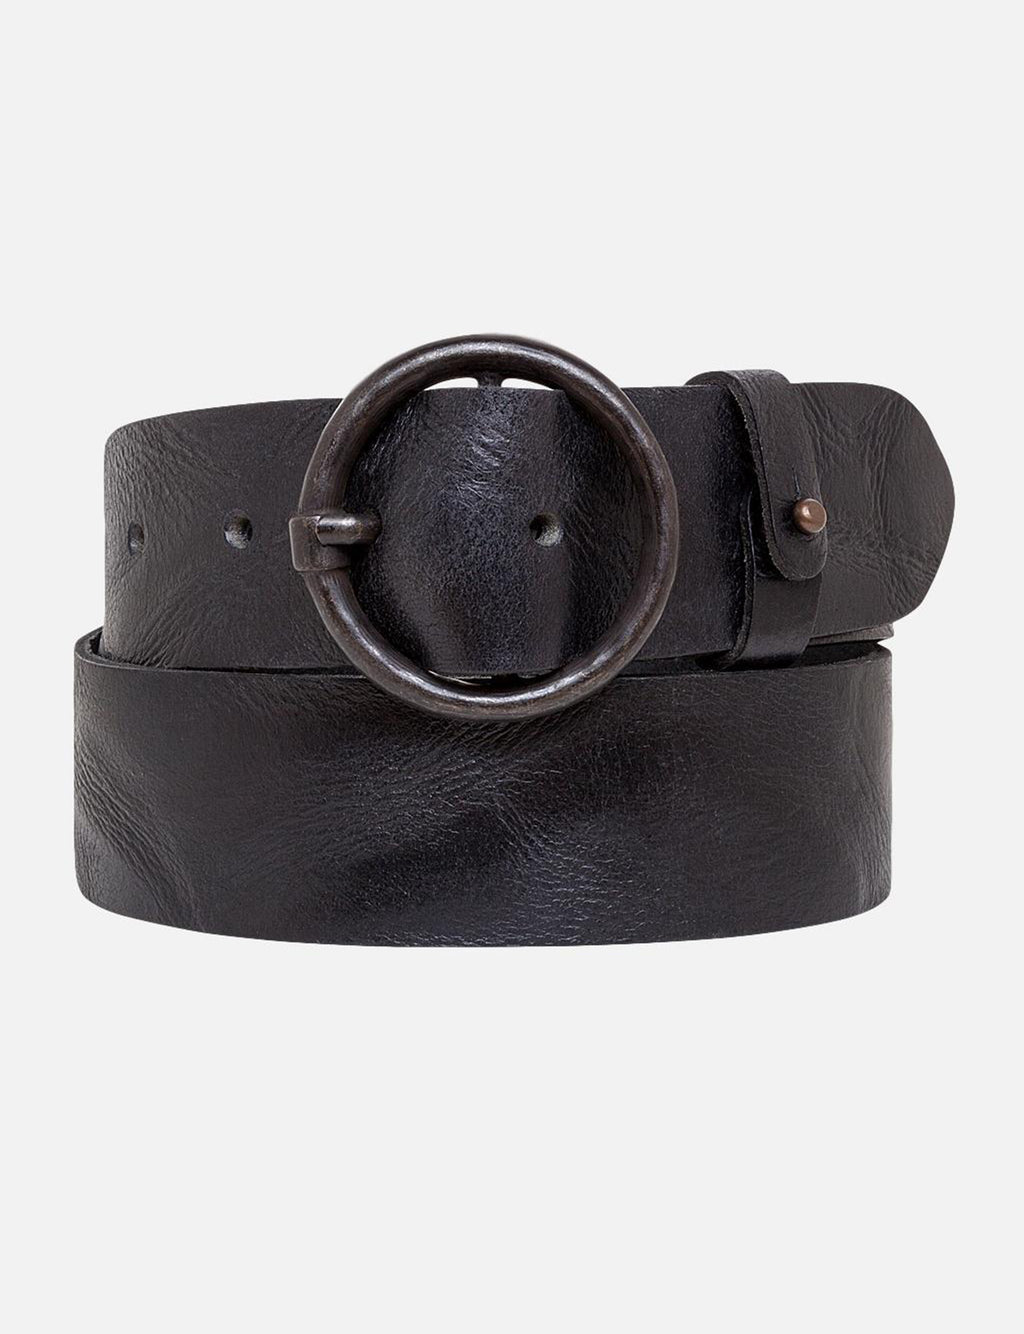 Amsterdam Heritage Pip Vintage Round Buckle Leather Belt in Black